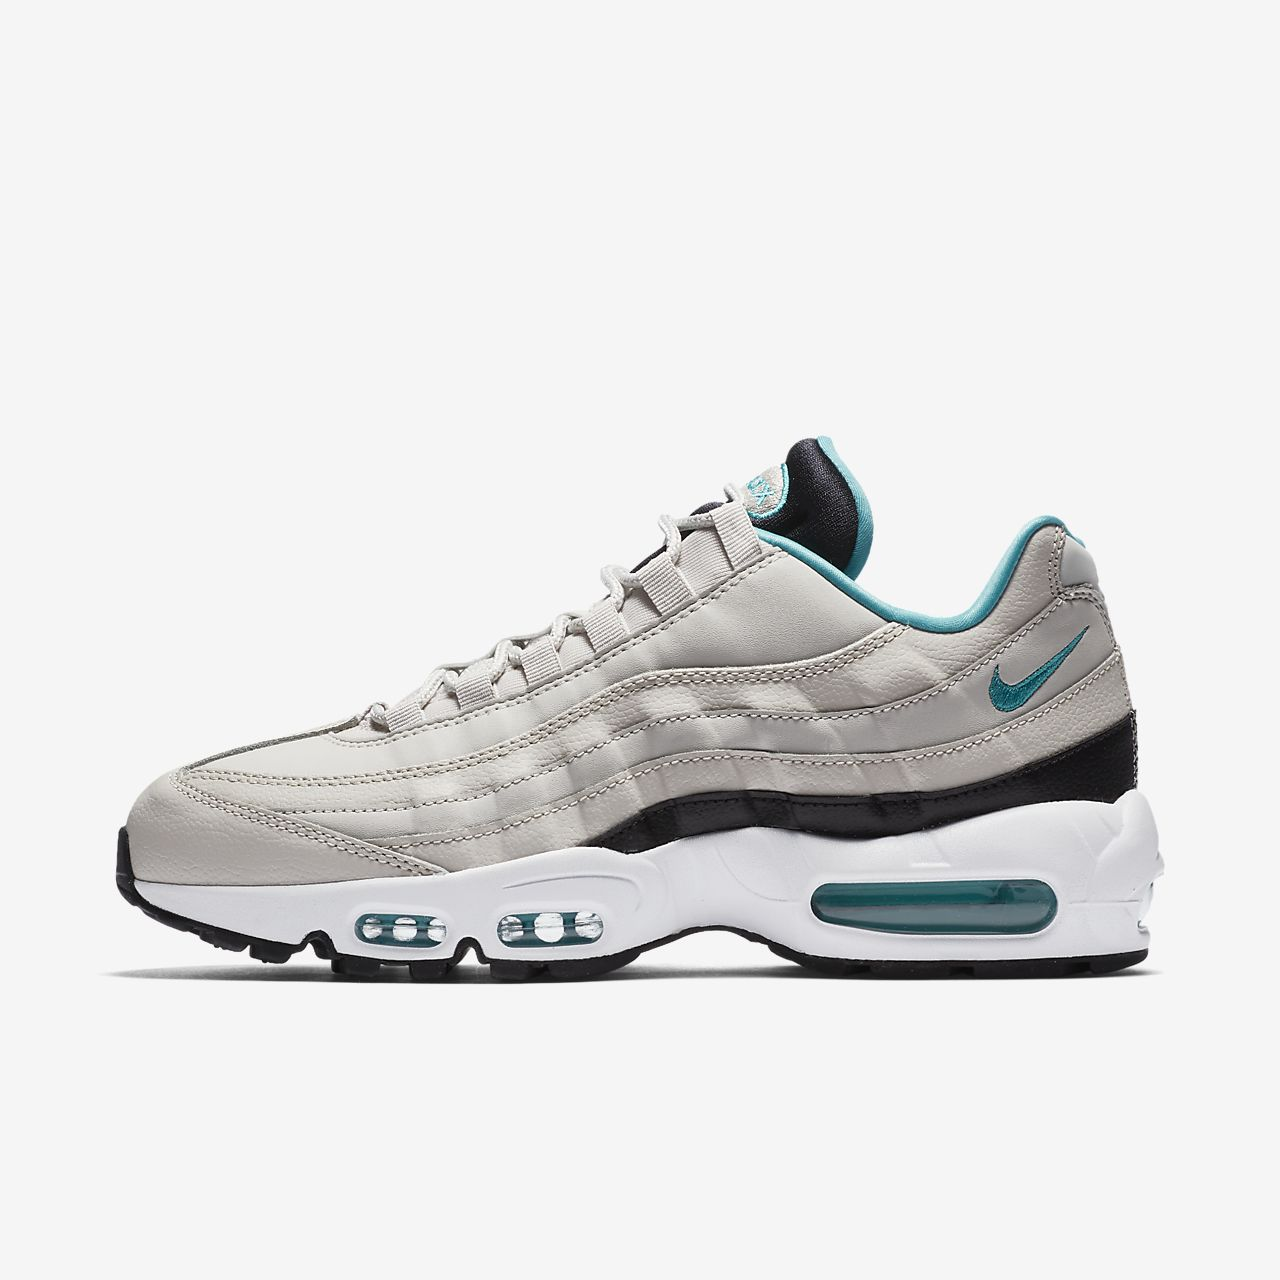 NIKE AIR MAX 95 SHOES  MENS LIFESTYLE SNEAKERS  BONE / TURQUOISE / BLACK